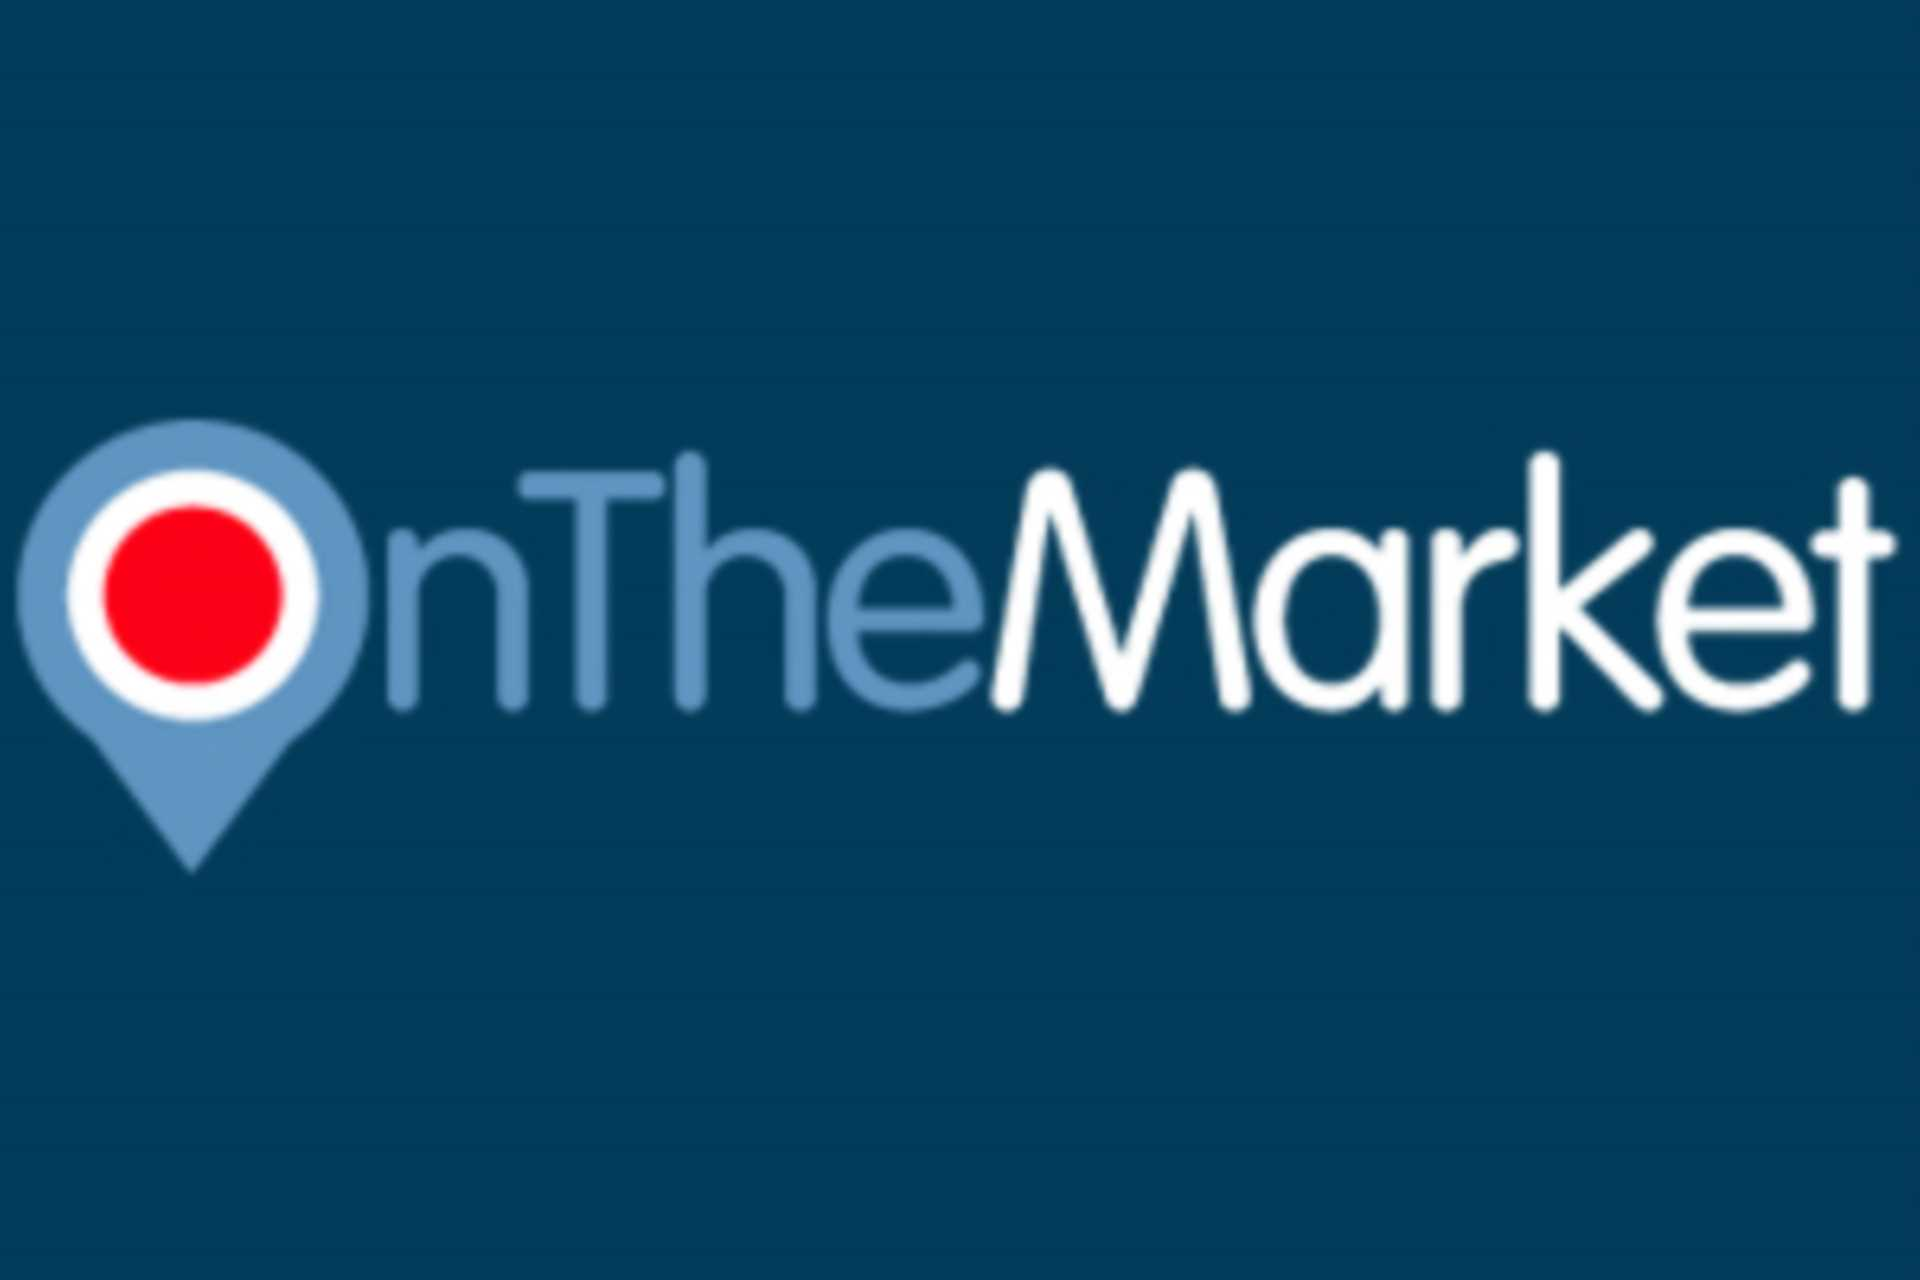 All our properties now listed on `OntheMarket`